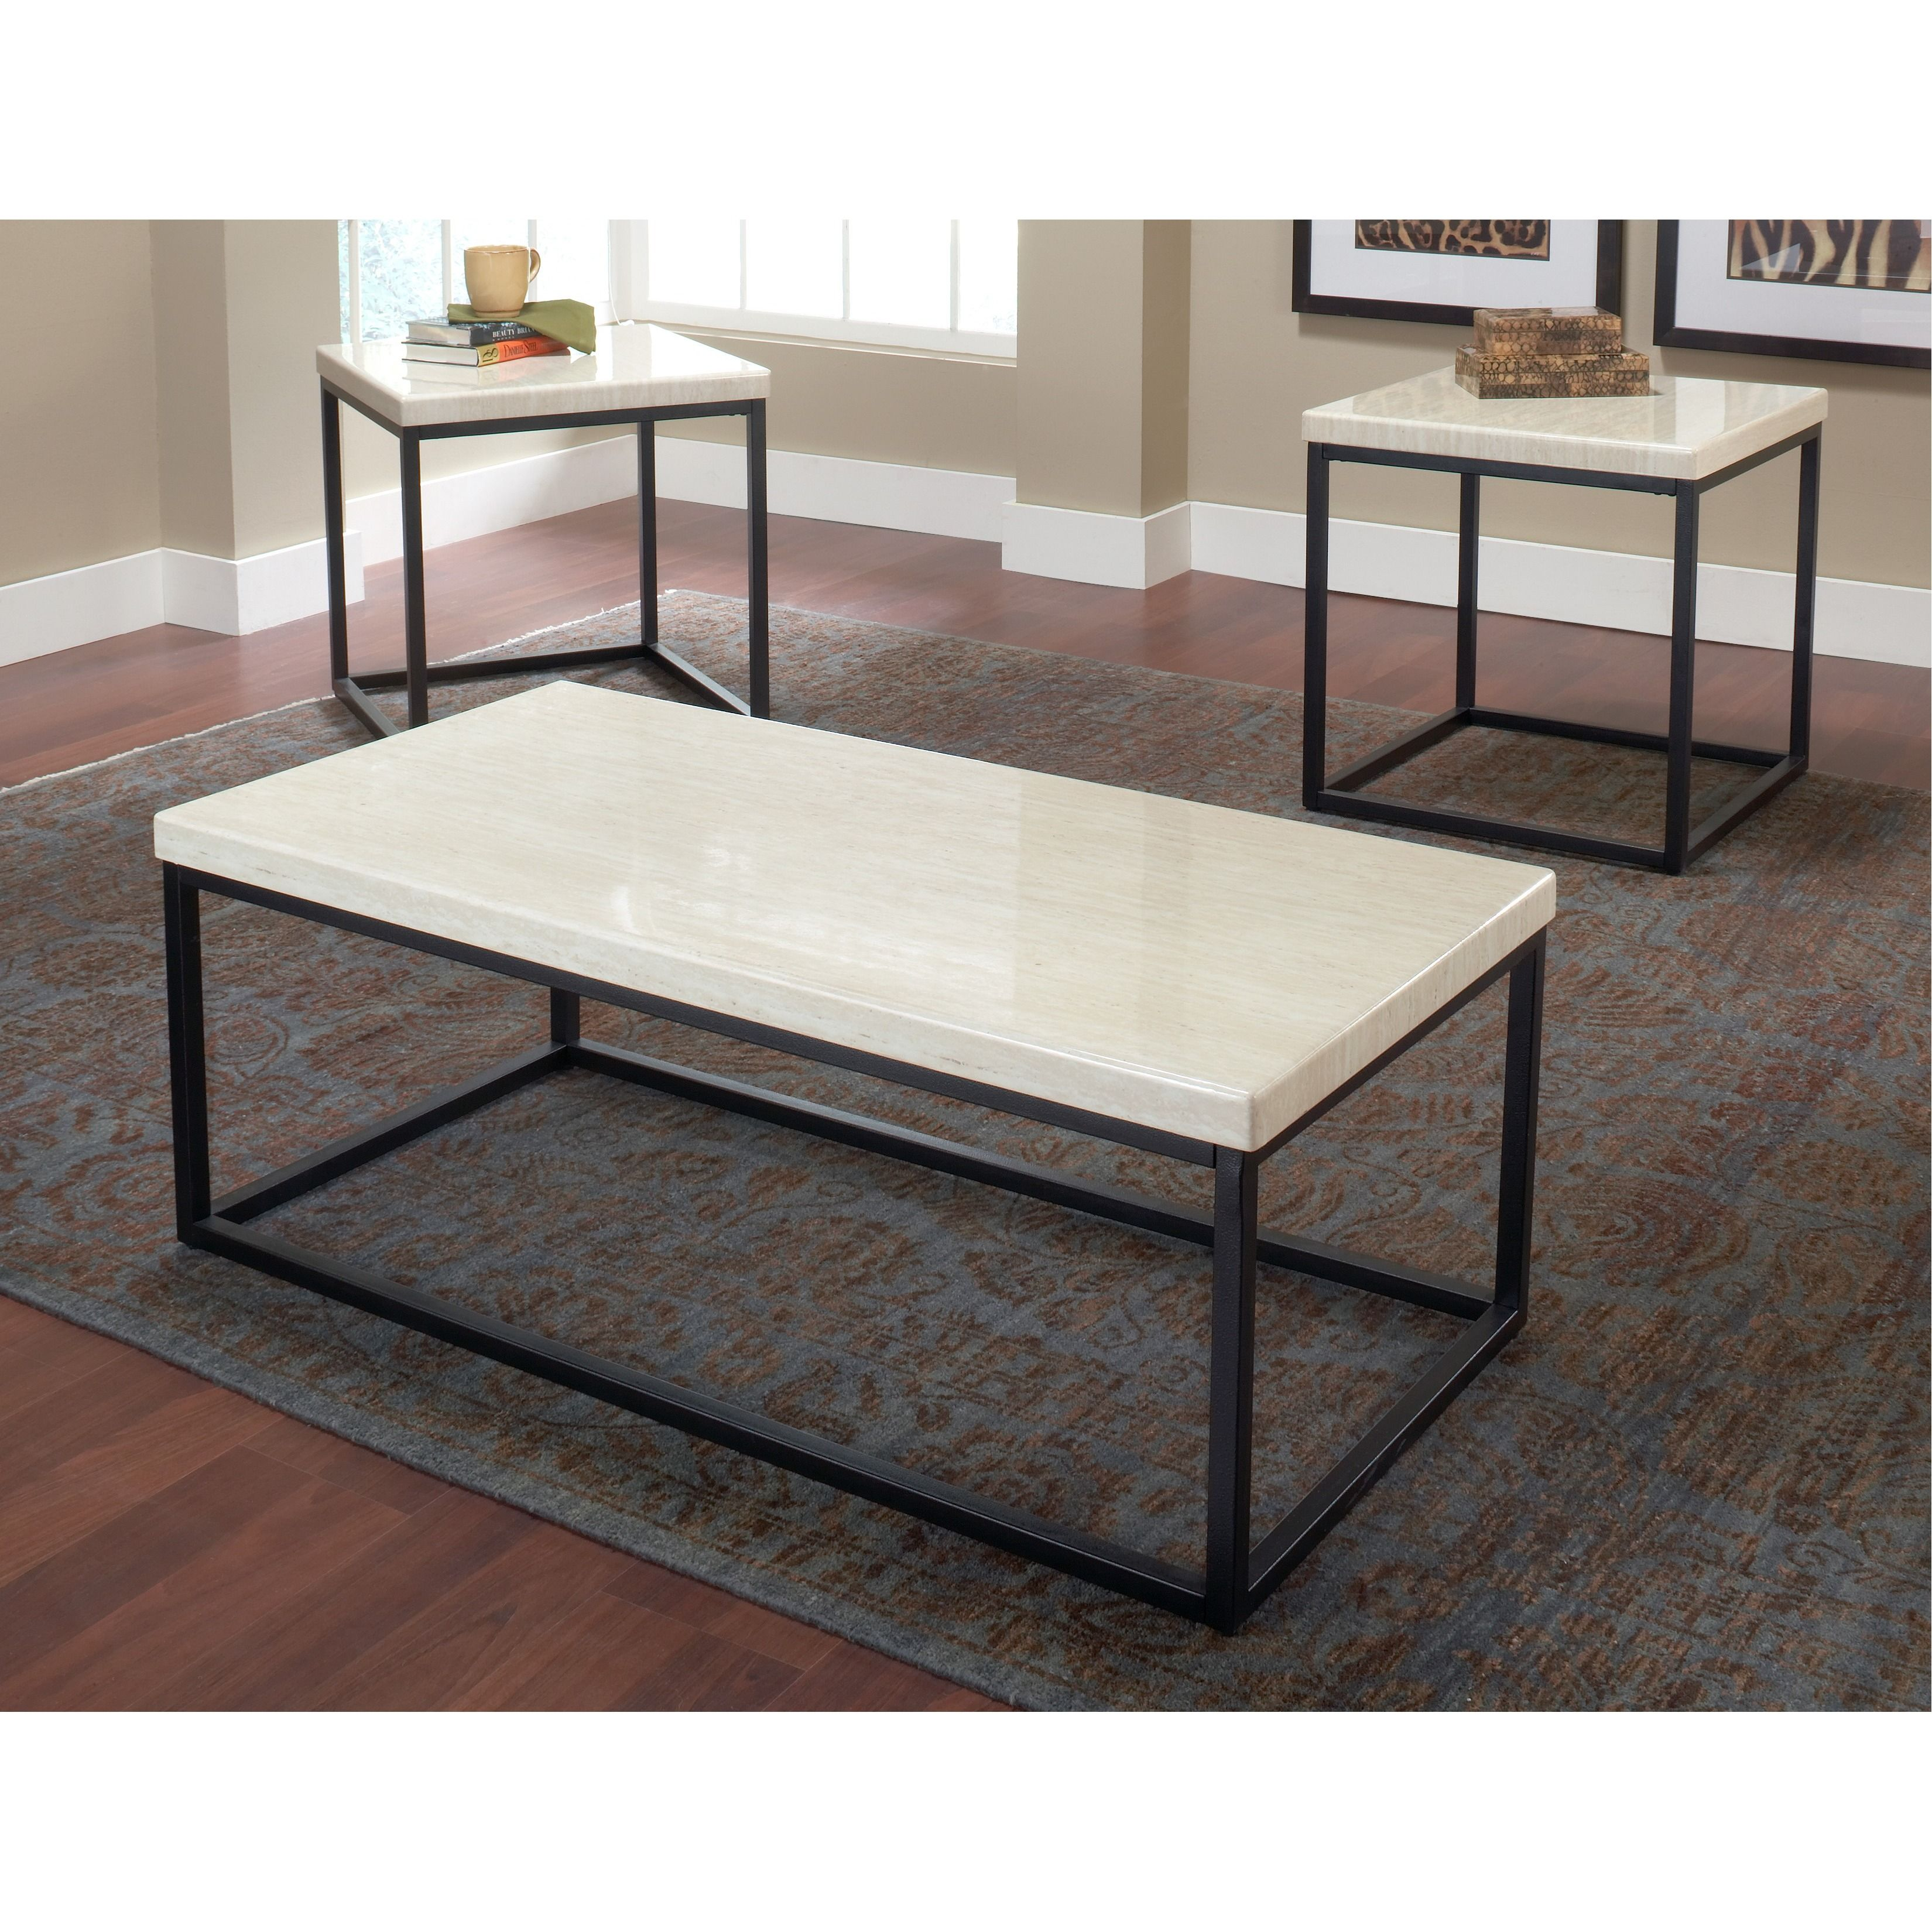 In A Clearly Clean Style, This Table Features A Multicolor Faux Marble Top  And Contrasting Black Metal Base To Give This Set Of Three A Truly Unique  Look.